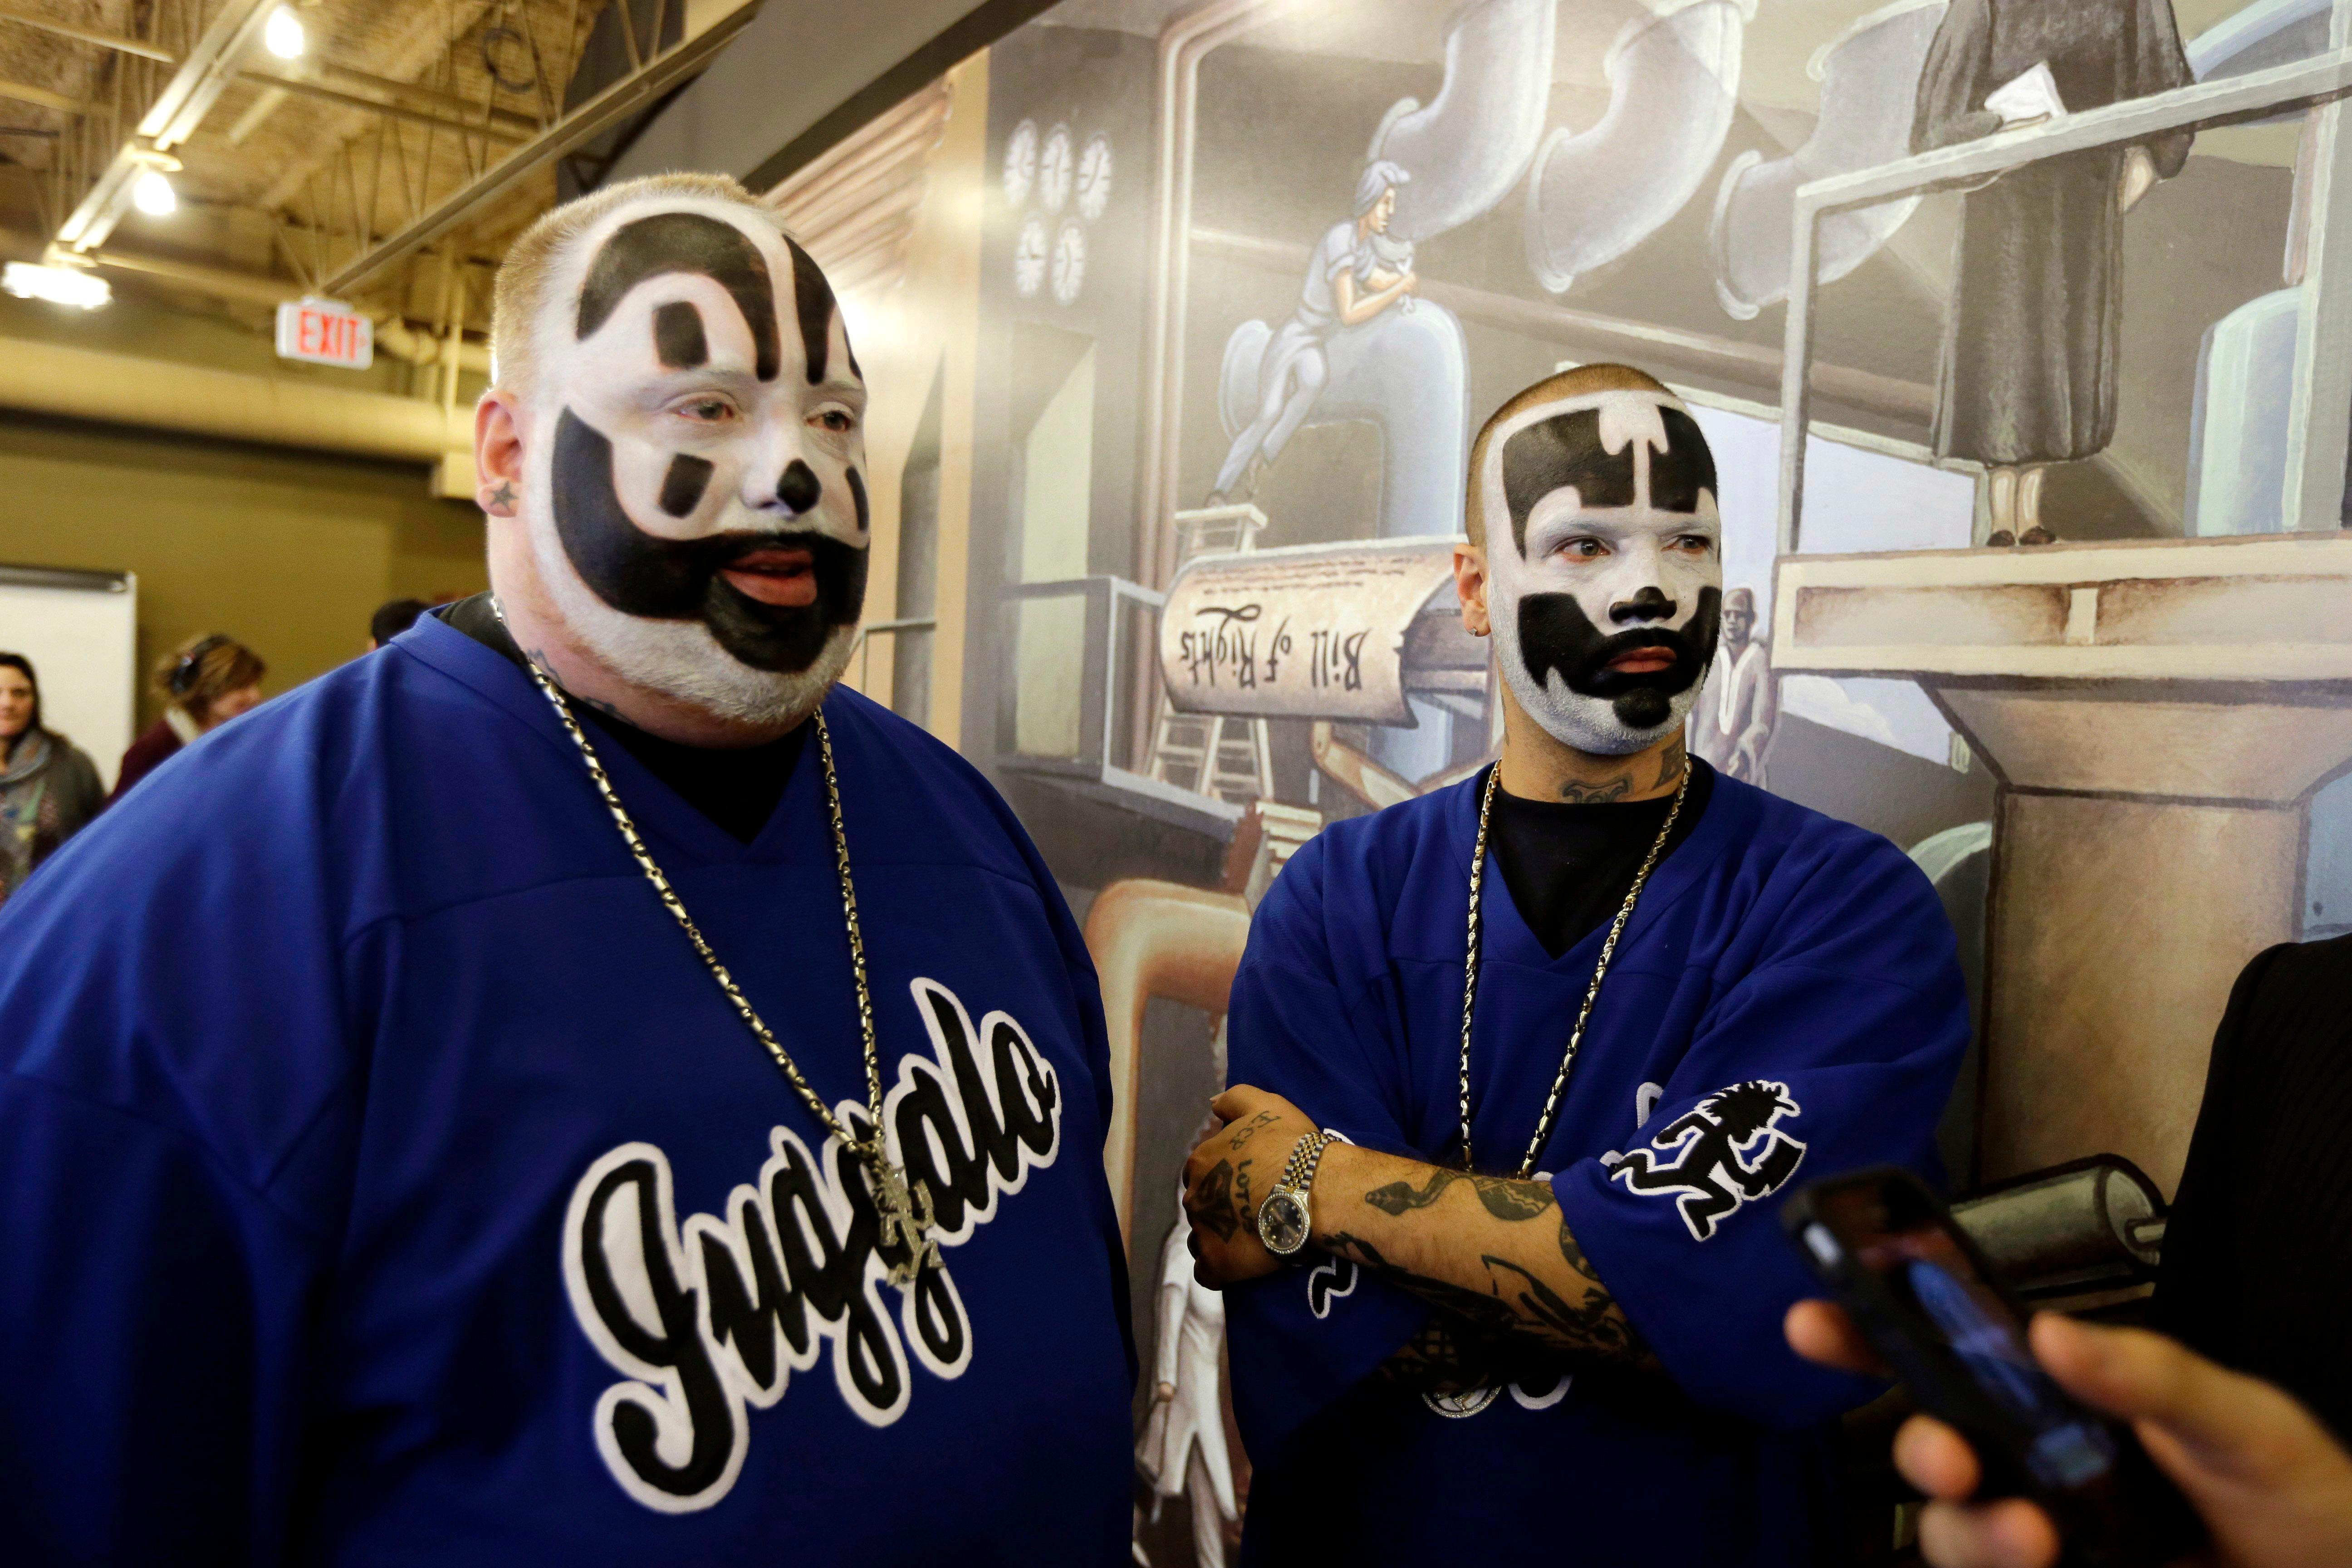 FILE - This Jan. 8, 2014, file photo shows Joseph Bruce aka Violent J, left, and Joseph Utsler aka Shaggy 2 Dope, members of the Insane Clown Posse after a news conference in Detroit. Stanley Gebhardt, of Ohio, filed a copyright infringement suit Tuesday, March 28, 2017, in federal court in Detroit saying the rap-metal group and member Joseph Bruce used a poem he wrote without his consent. (AP Photo/Carlos Osorio, File)